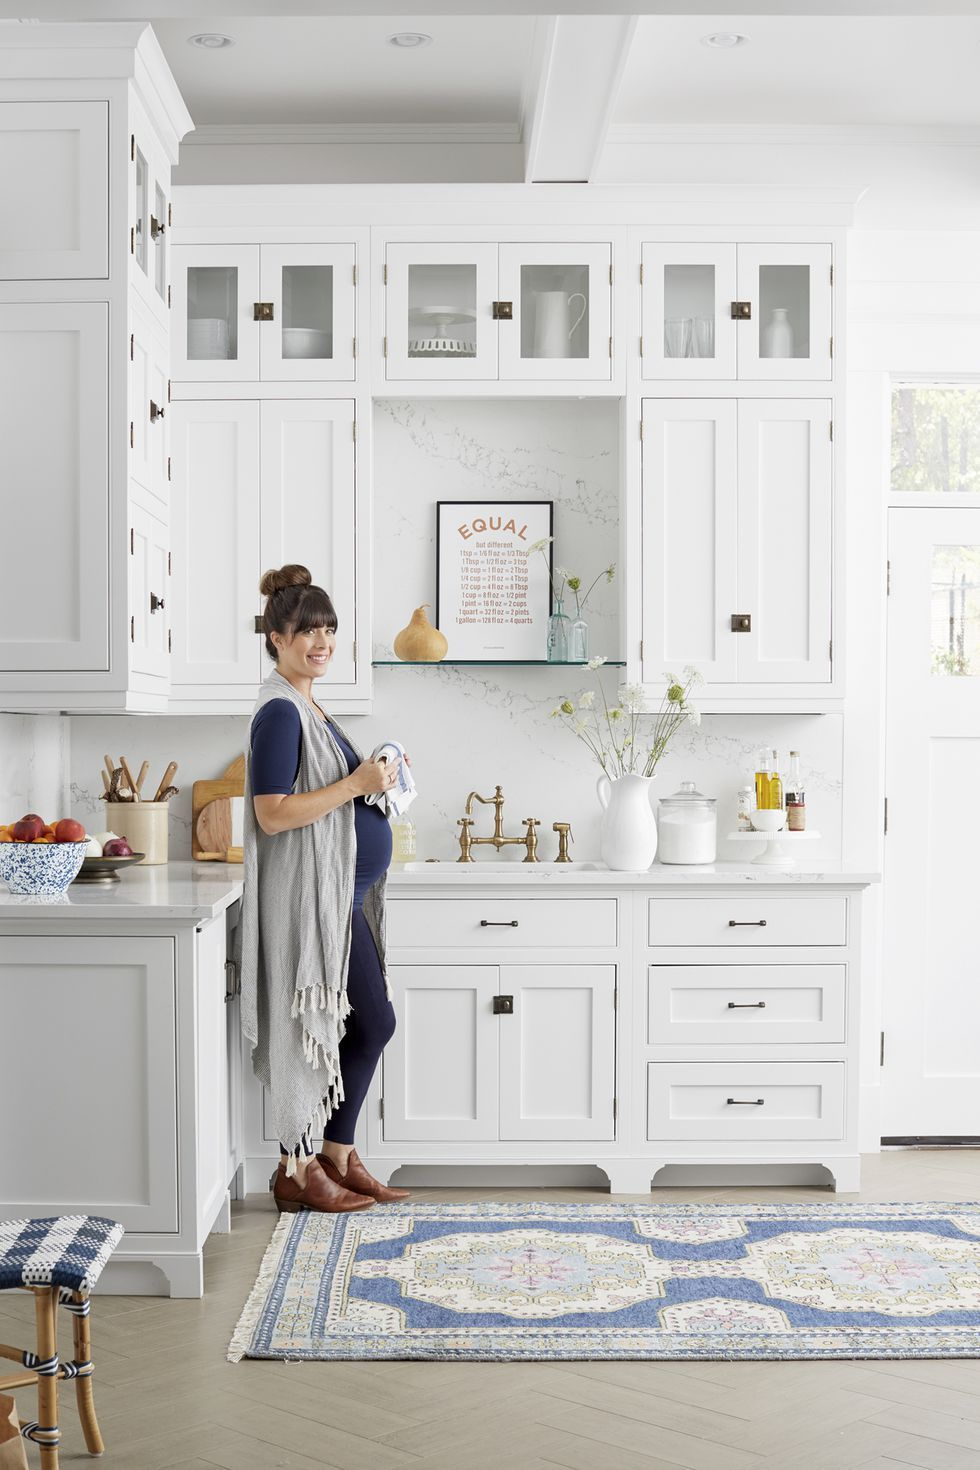 Country Living Magazine & 100+ Kitchen Design Ideas - Pictures of Country Kitchen Decorating ...